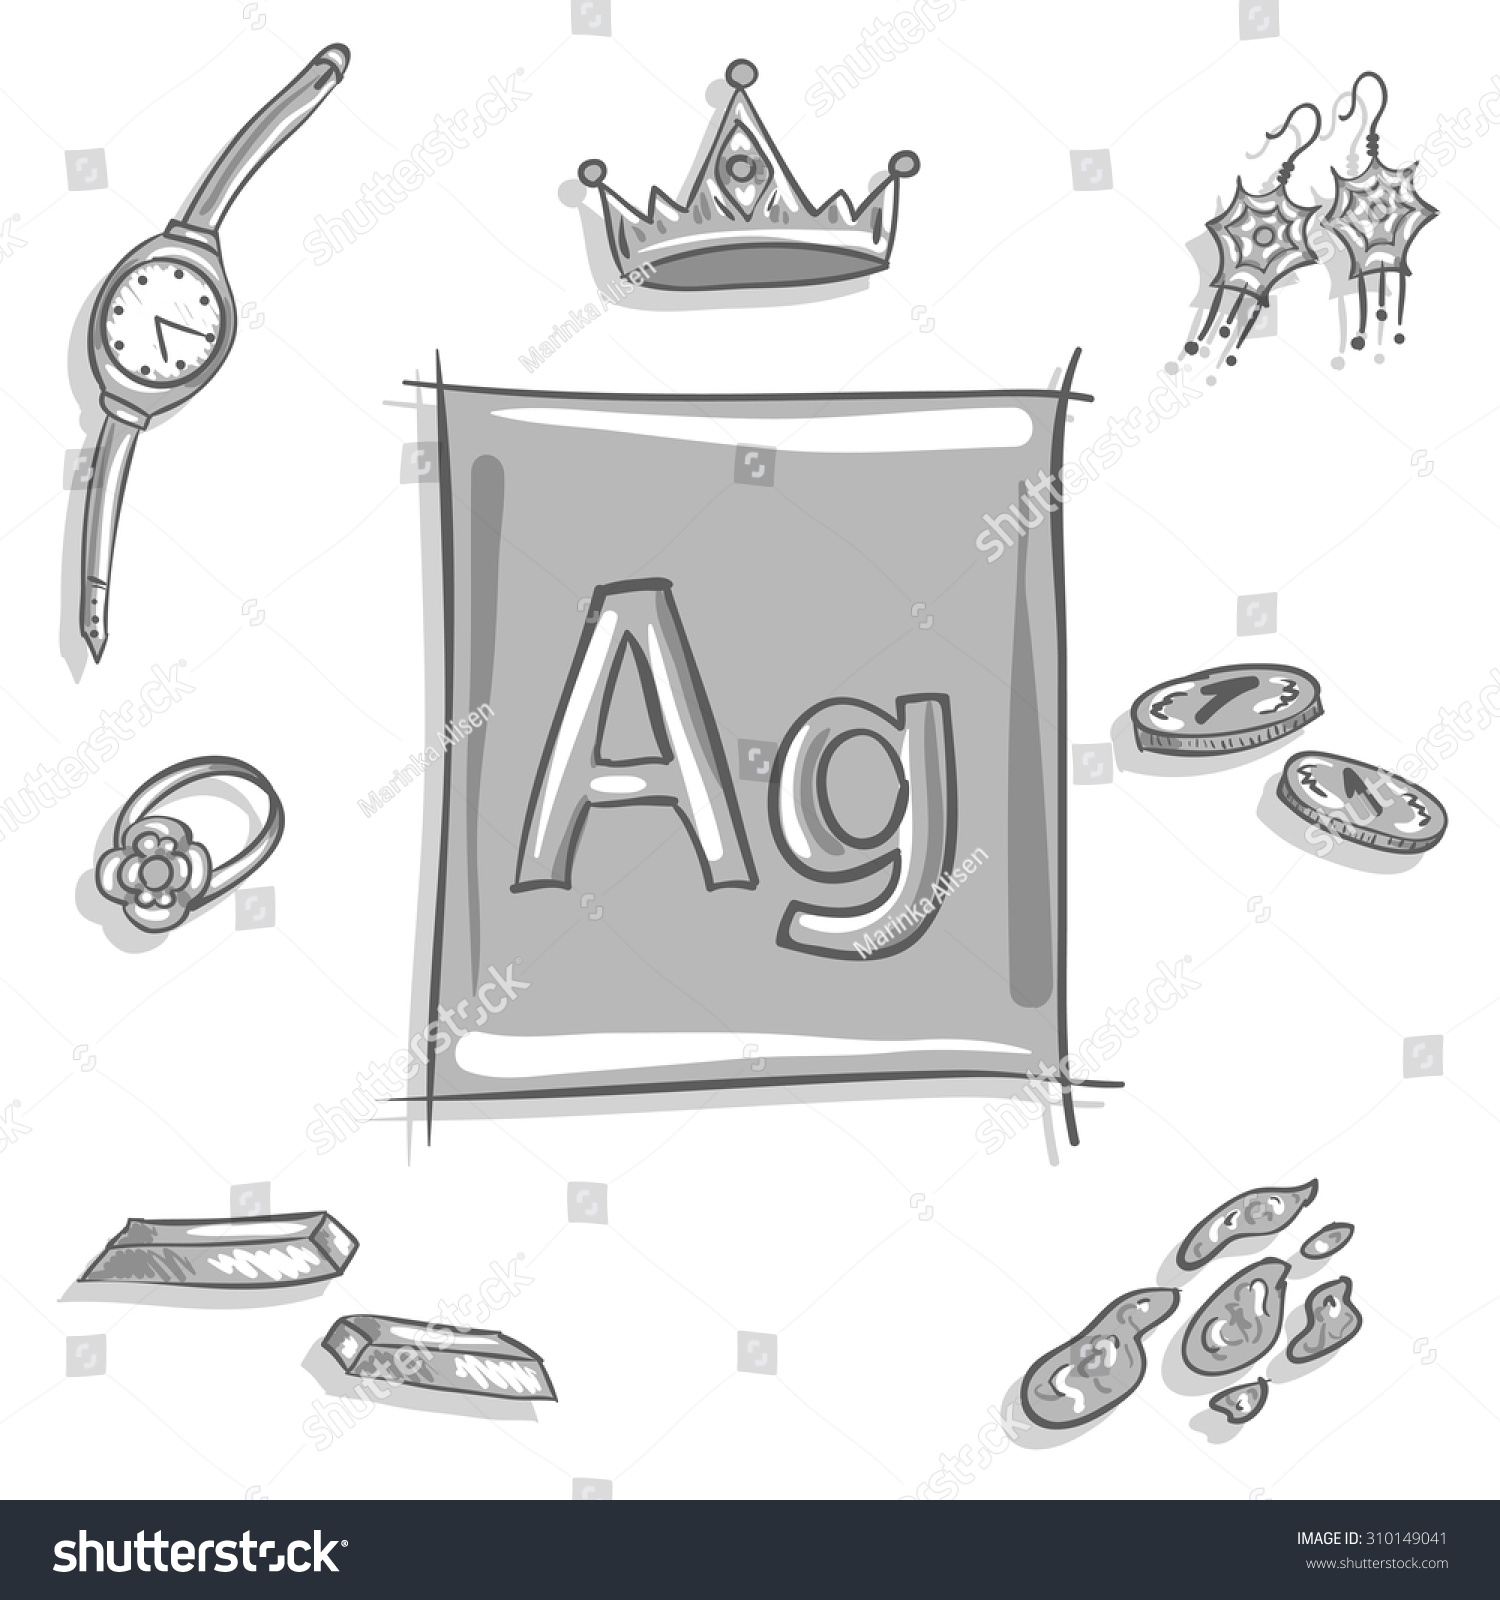 Element Silvers: Royalty-free Chemical Element Ag (silver, Argentum